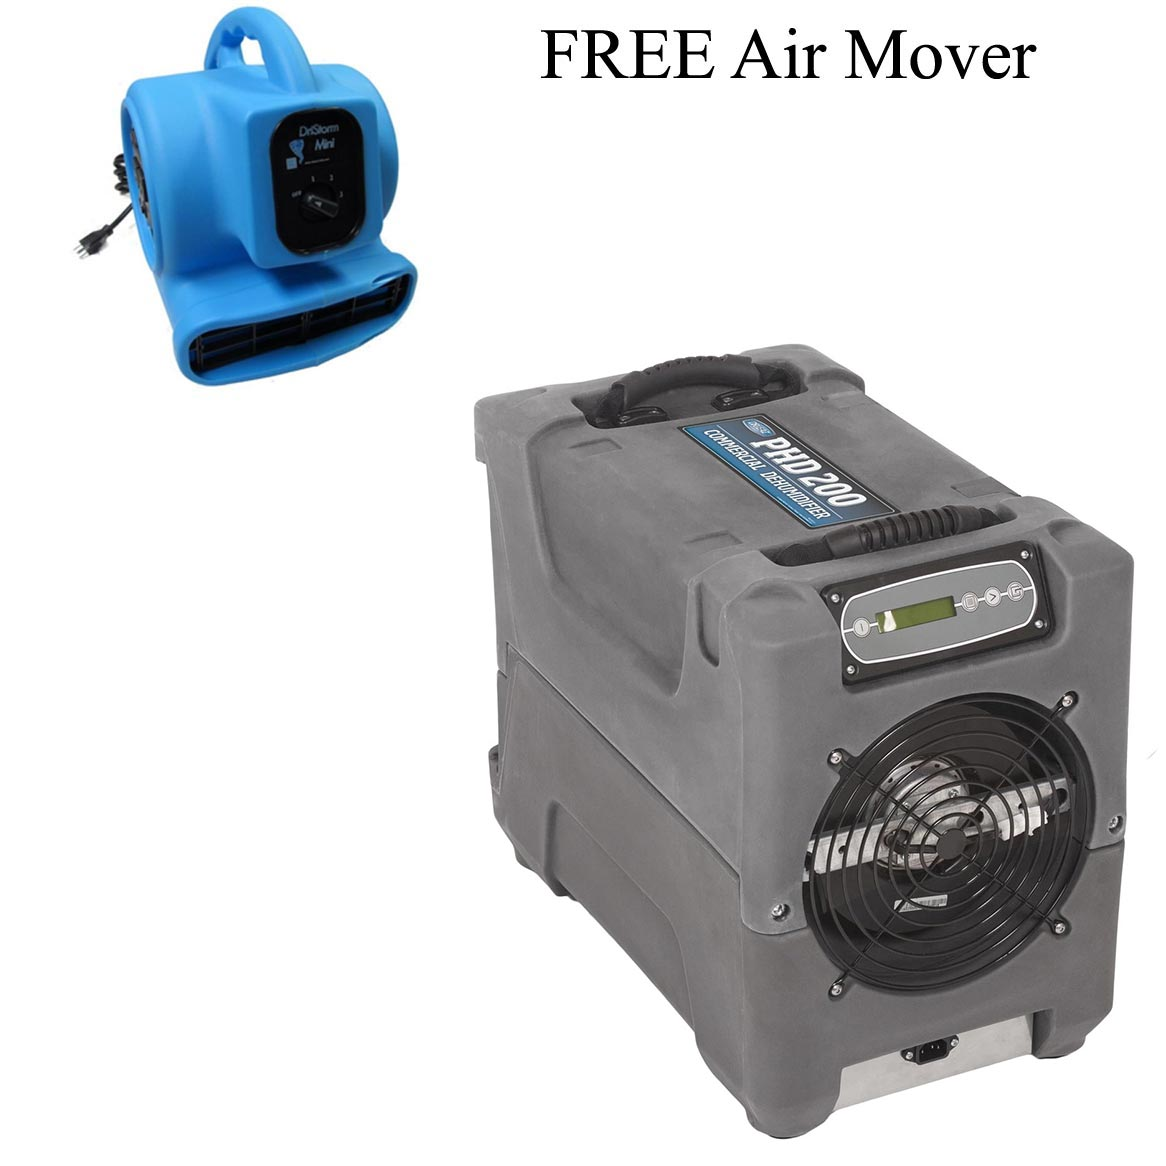 Drieaz F515 PHD200 Compact Craw Space Industrial Dehumidifier FREE Shipping FREE Air Mover [F515 PHD200]